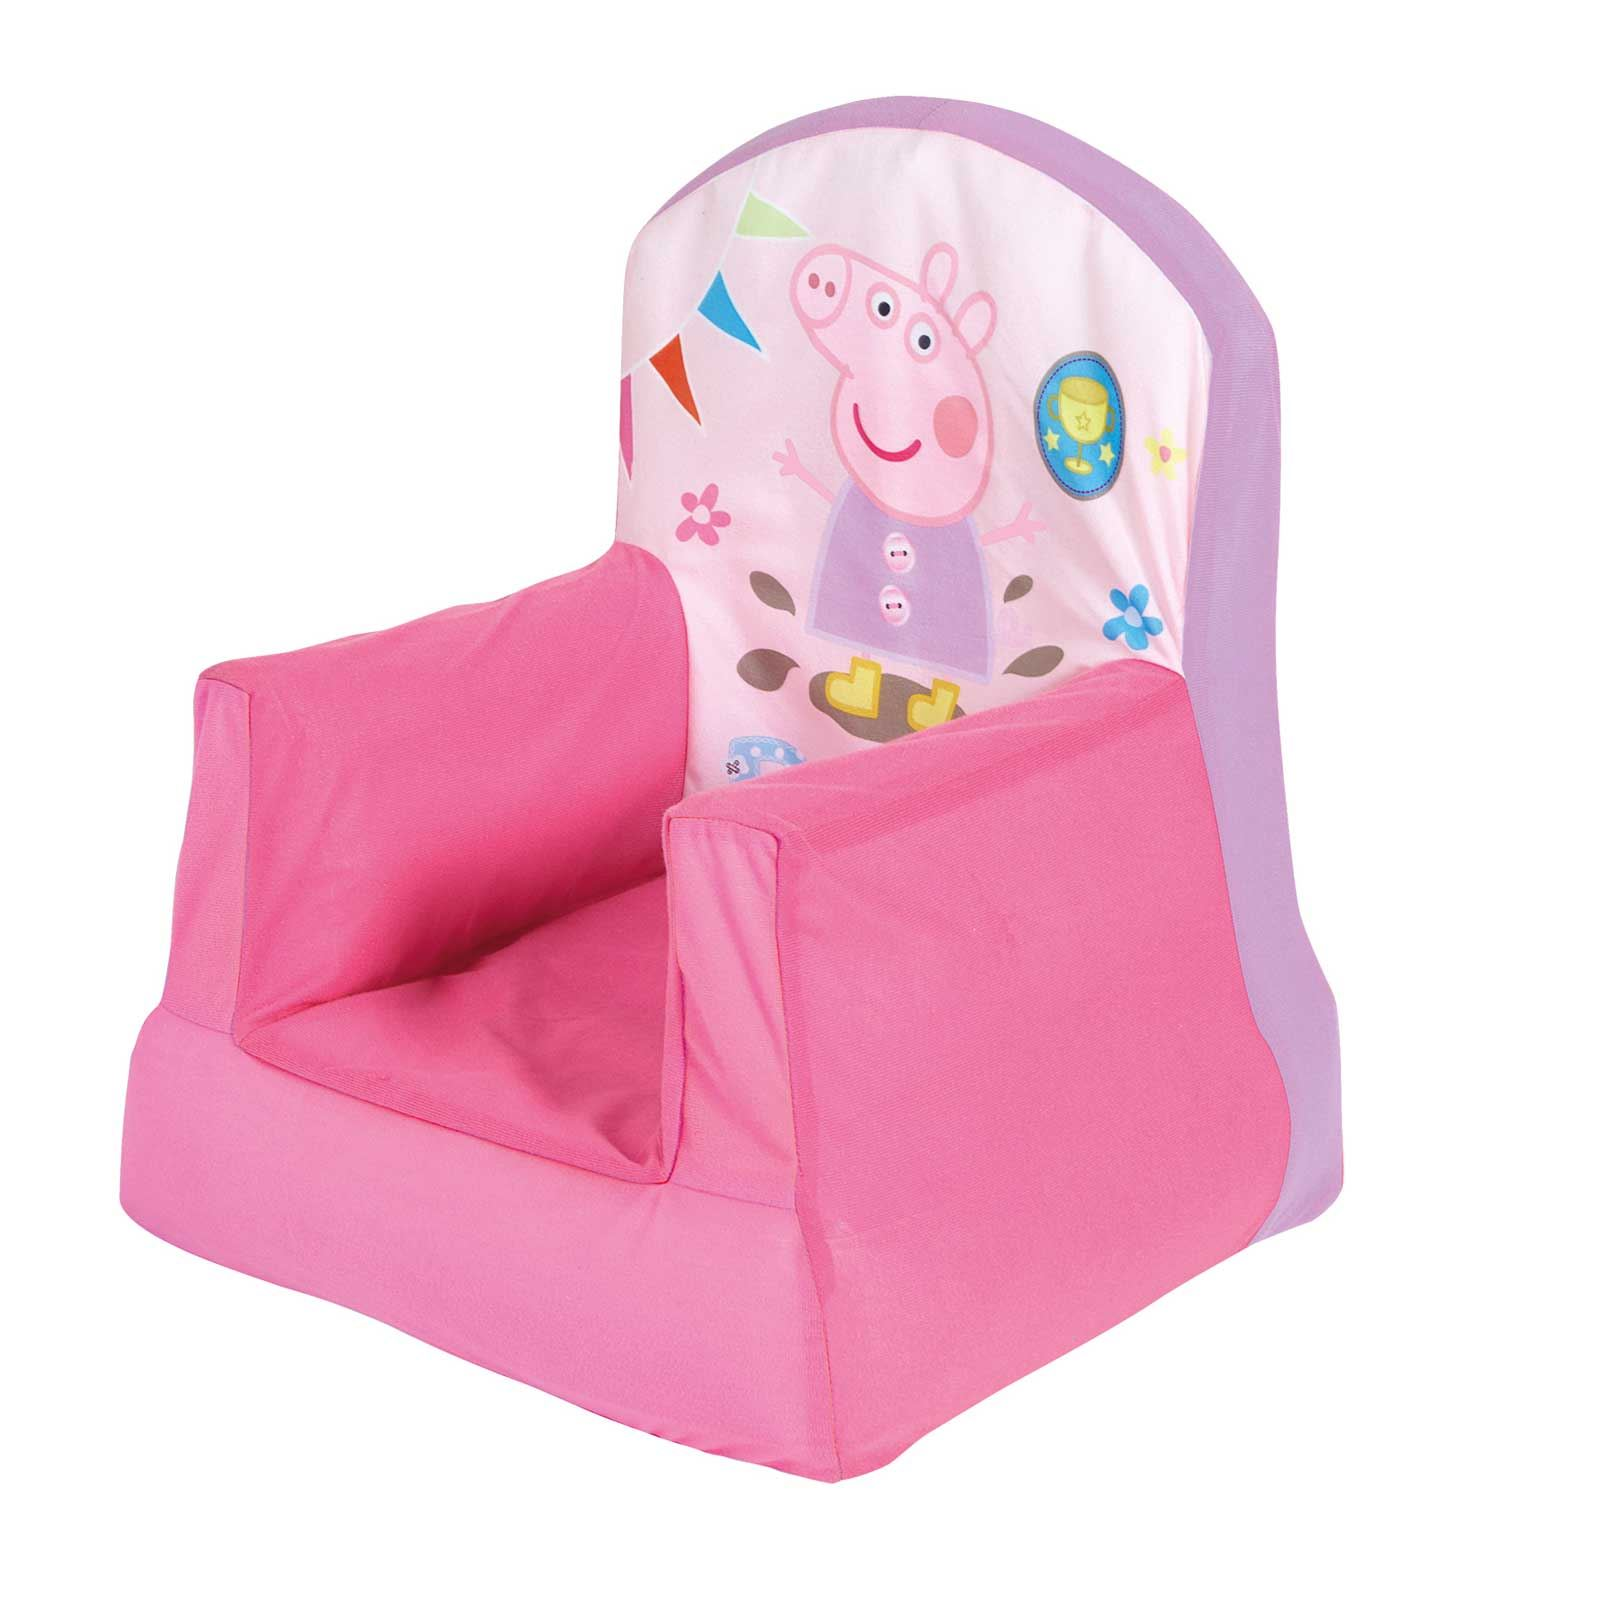 Peppa Pig Bedroom Furniture Official Disney And Character Childrens Cosy Chairs Inflatable